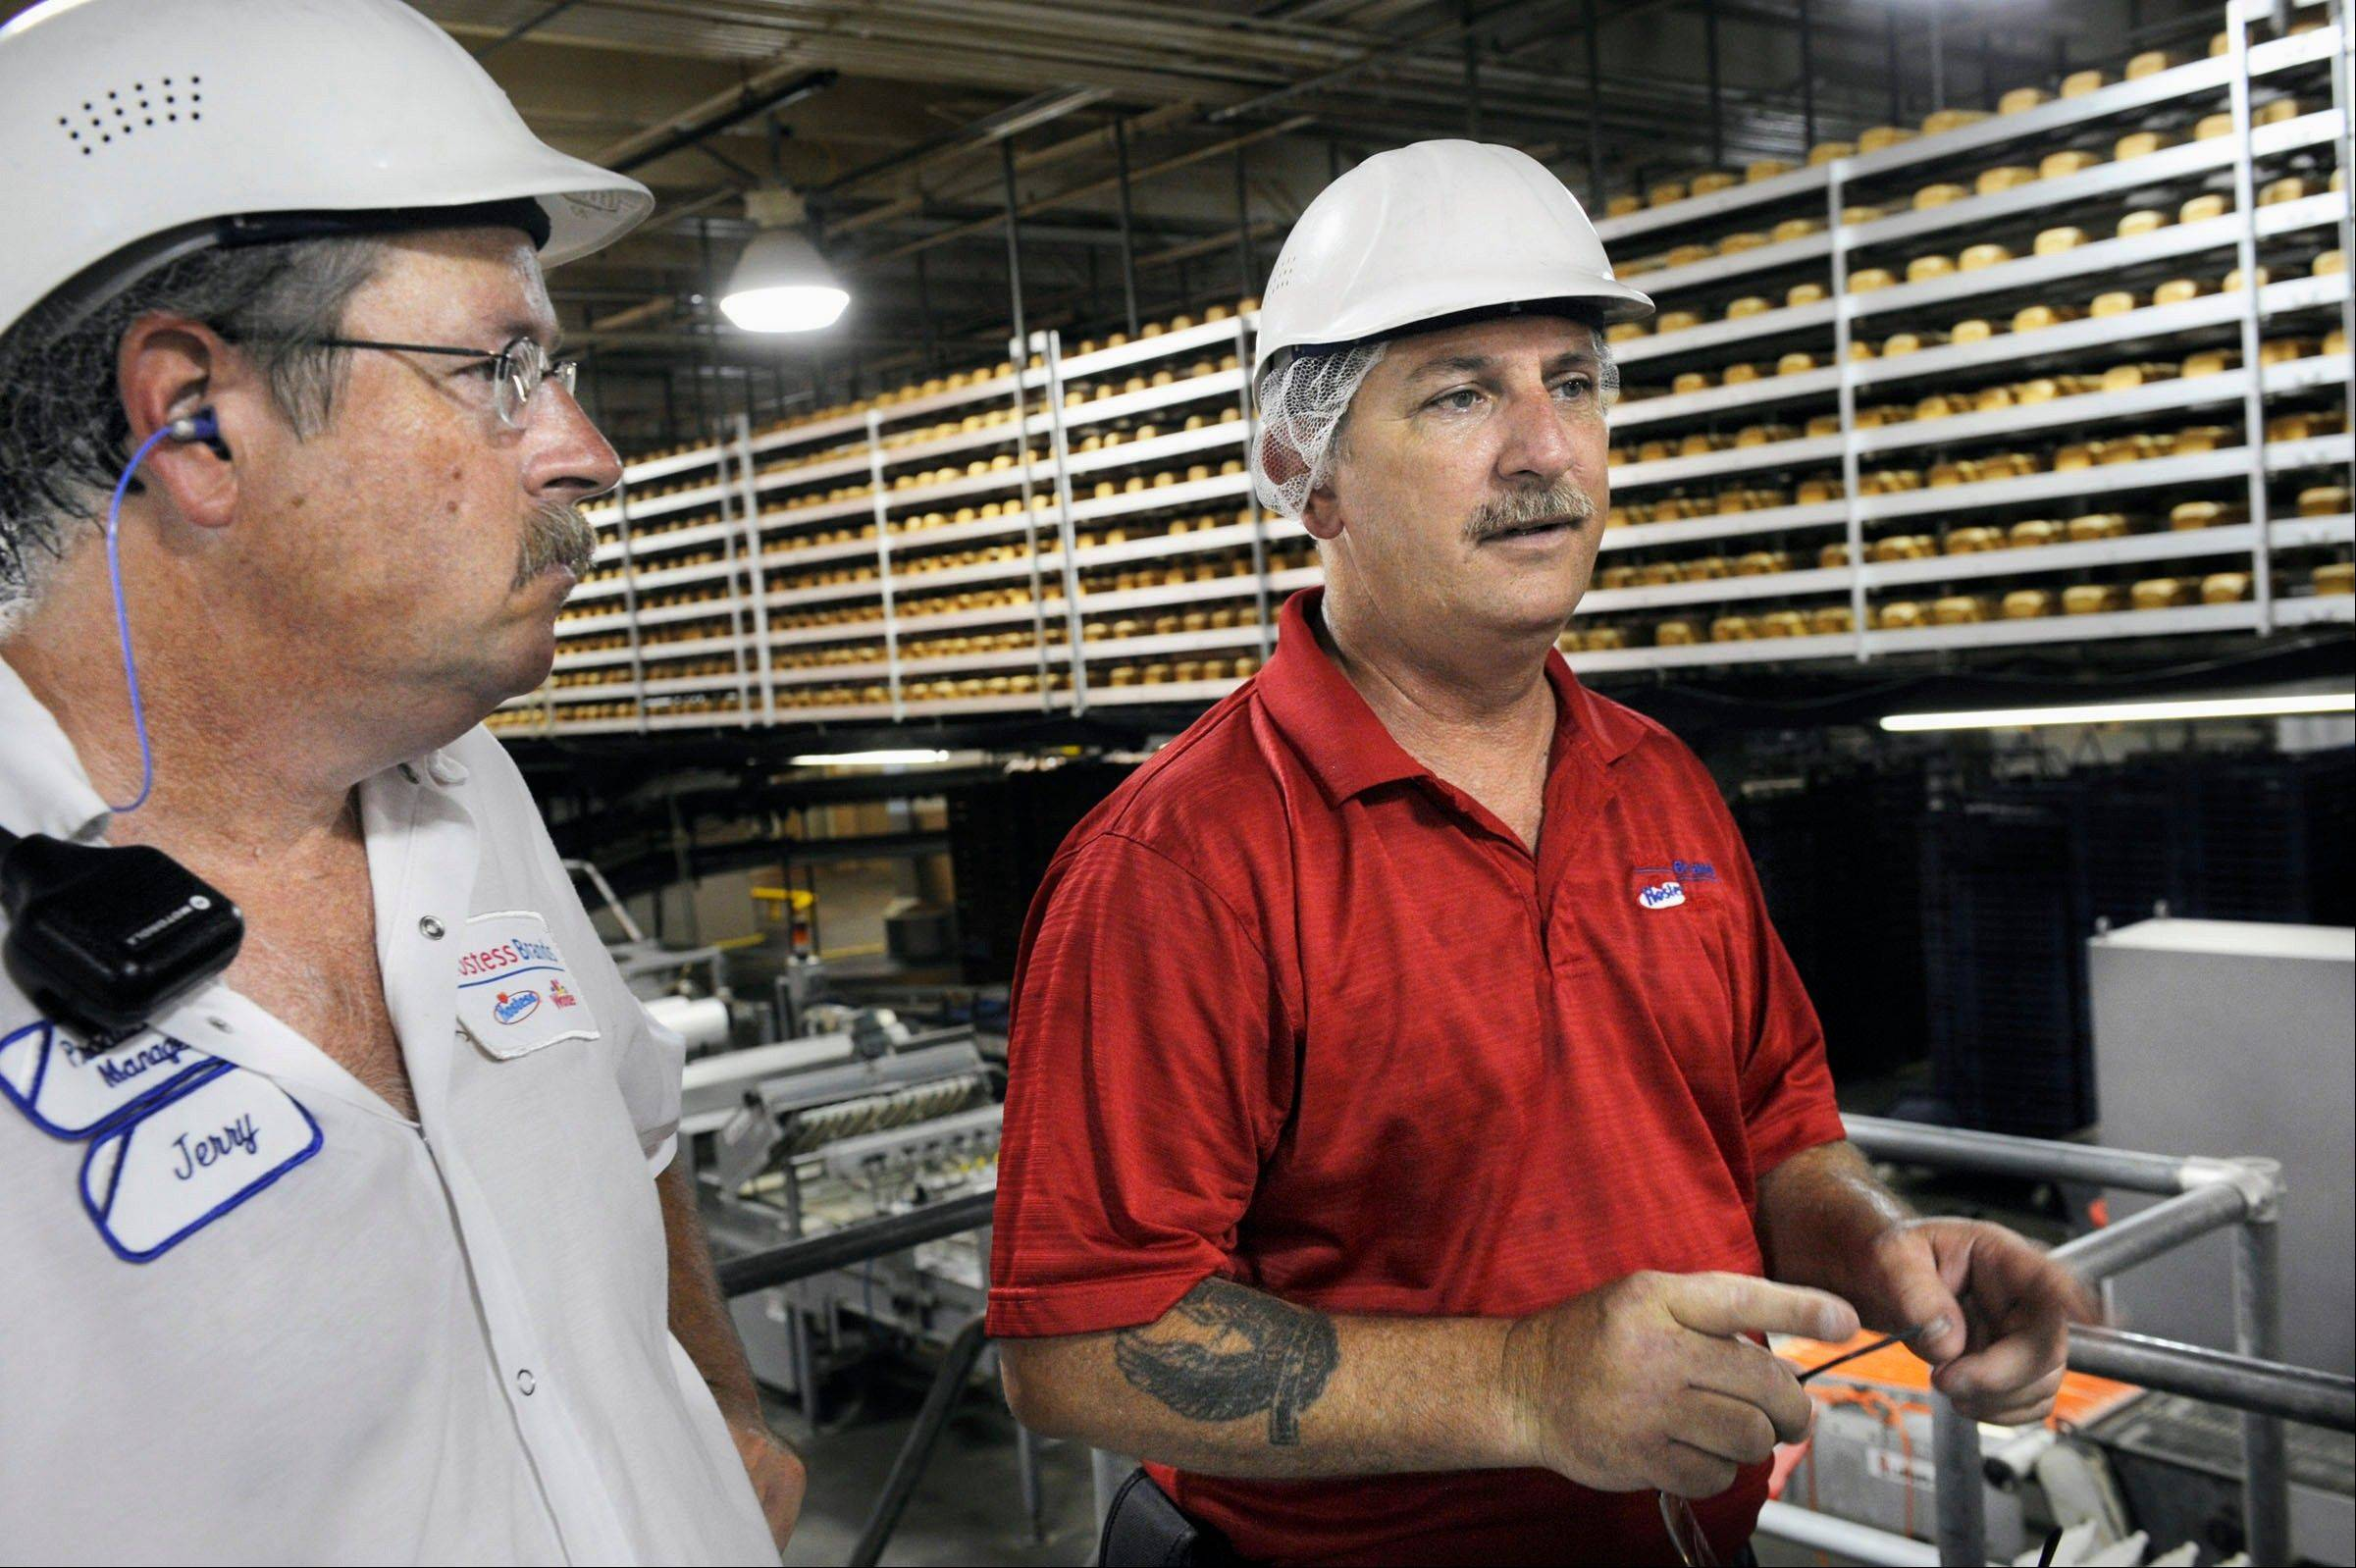 General manager Matt Stringer, right, and operations manager Jerry Montgomery talk about the Butternut bread plant in Peoria as thousands of loaves of bread pass by on the cooling racks in the background. The bakery has been in Peoria since the 1890s originally as Shulze's Buttercrust Bakery.